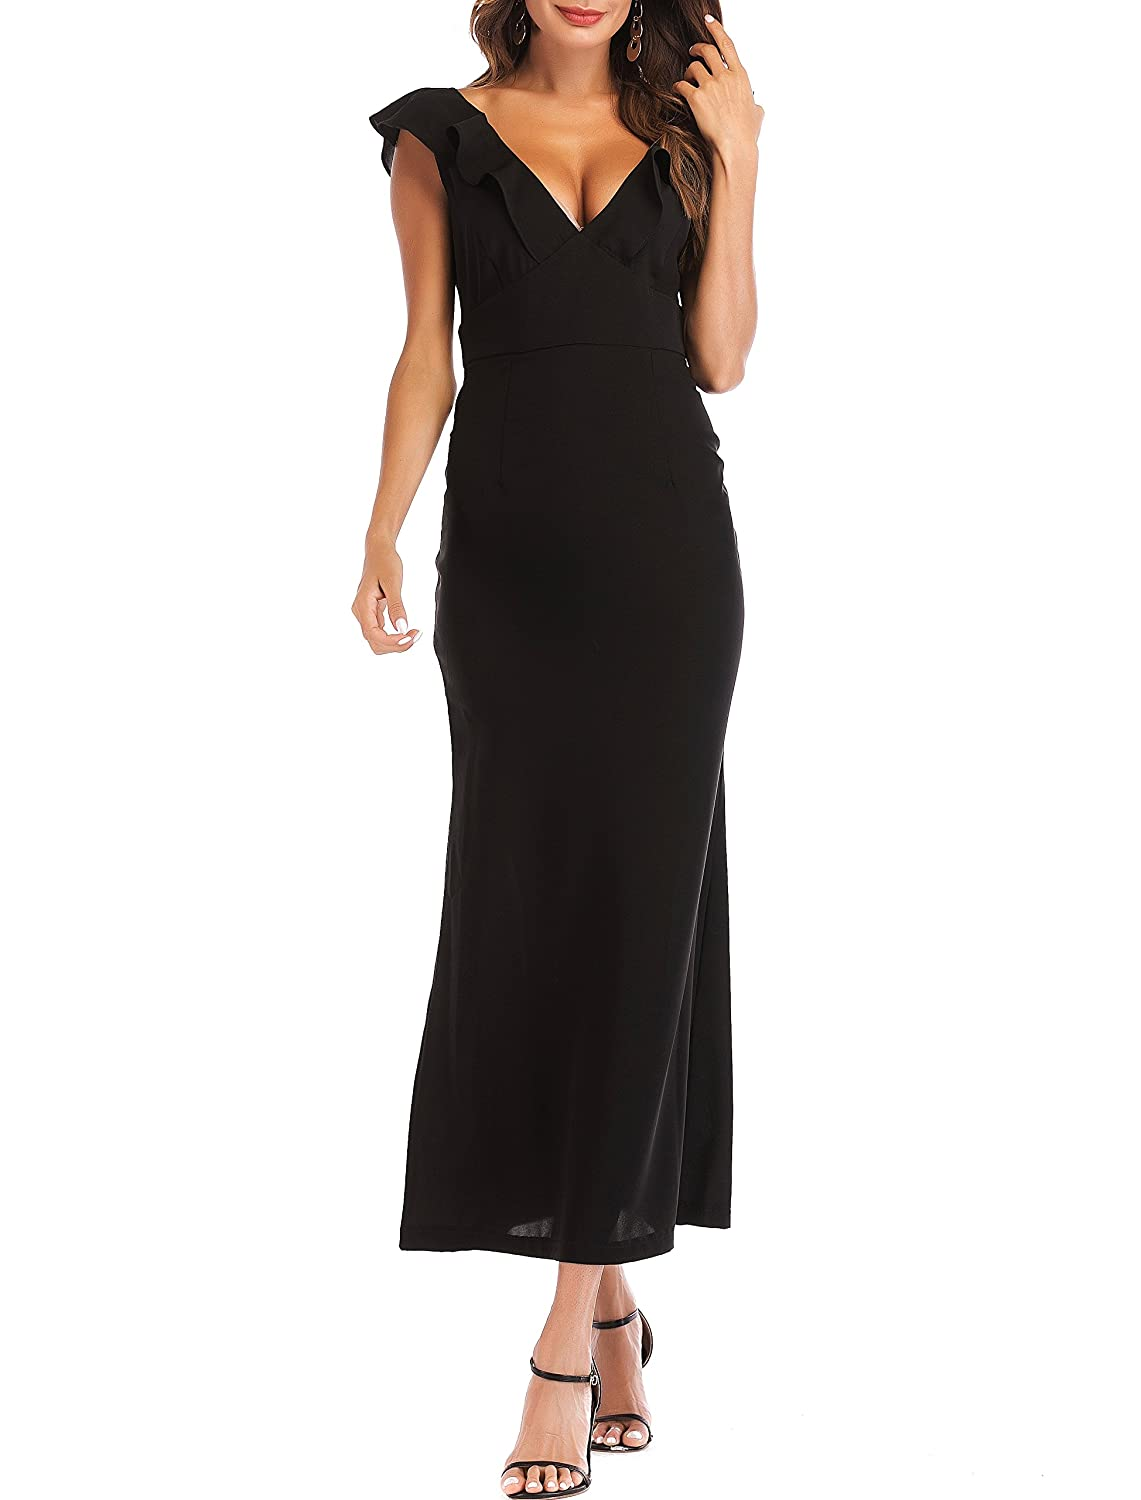 Black SUNNOW Women's Summer Solid VNeck Sexy Ruffle V Back Cocktail Club Evening Party Long Maxi Dress